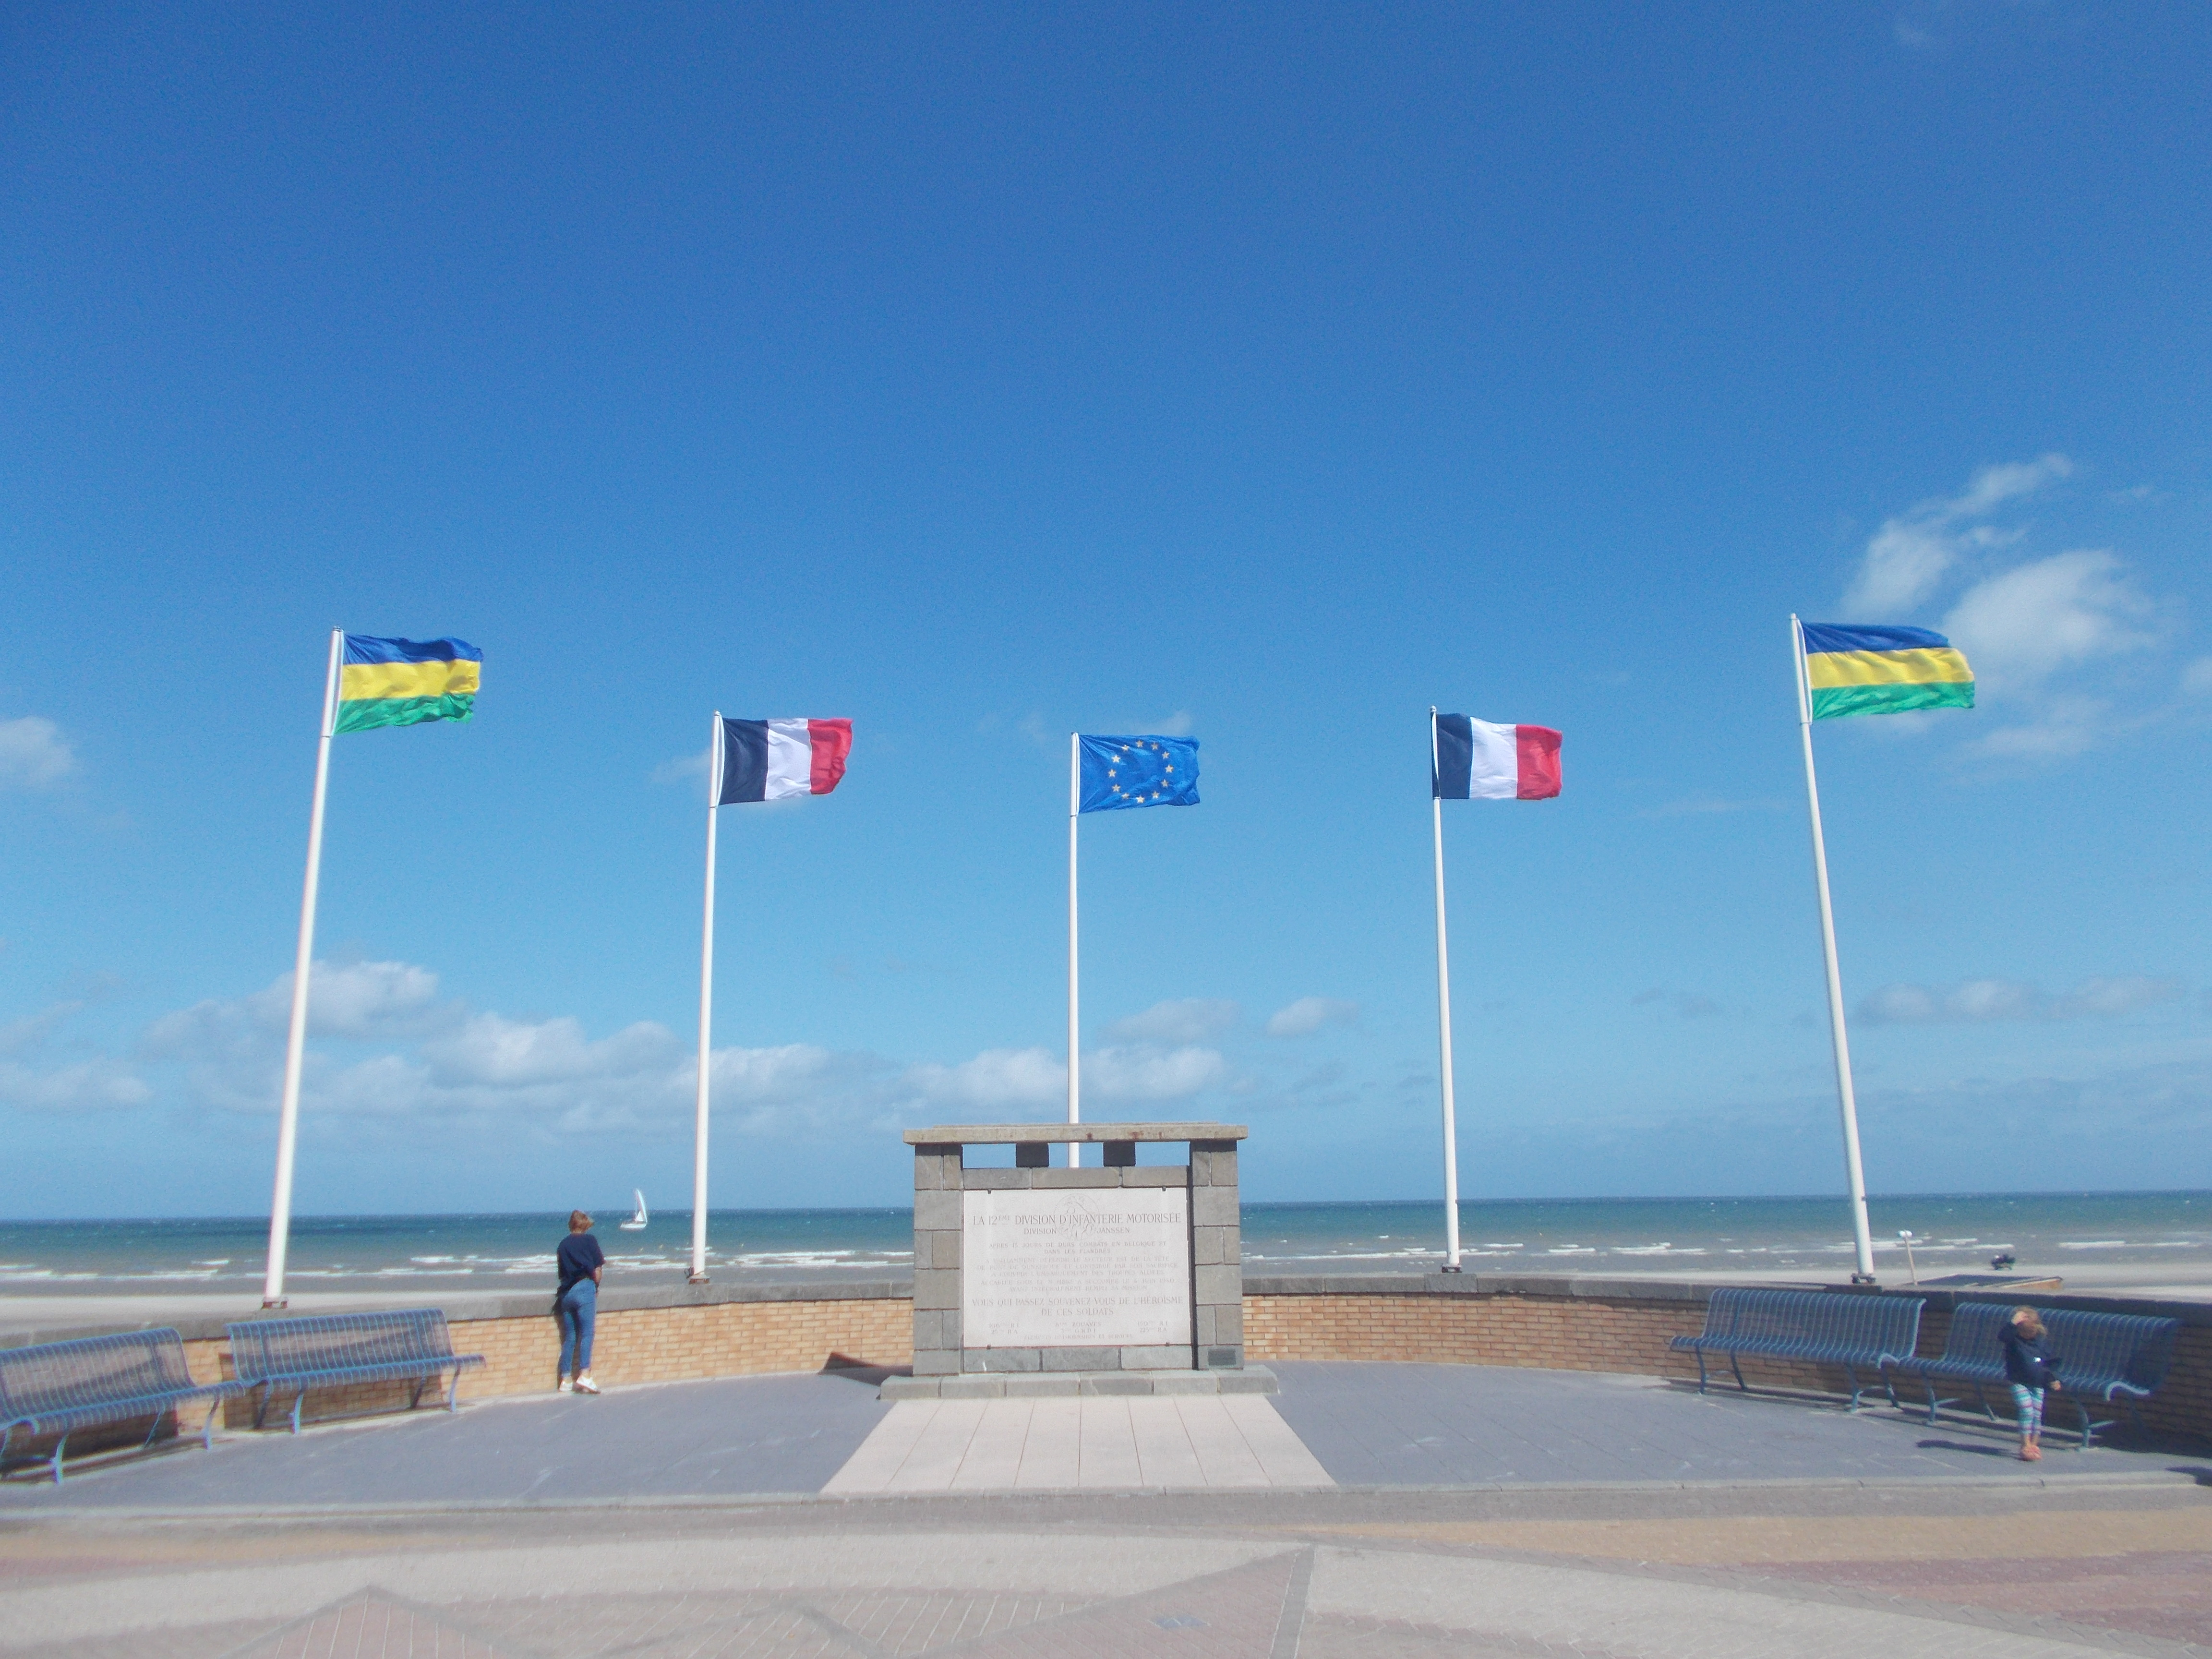 Boulogne-sur-Mer to Bray-Dunes